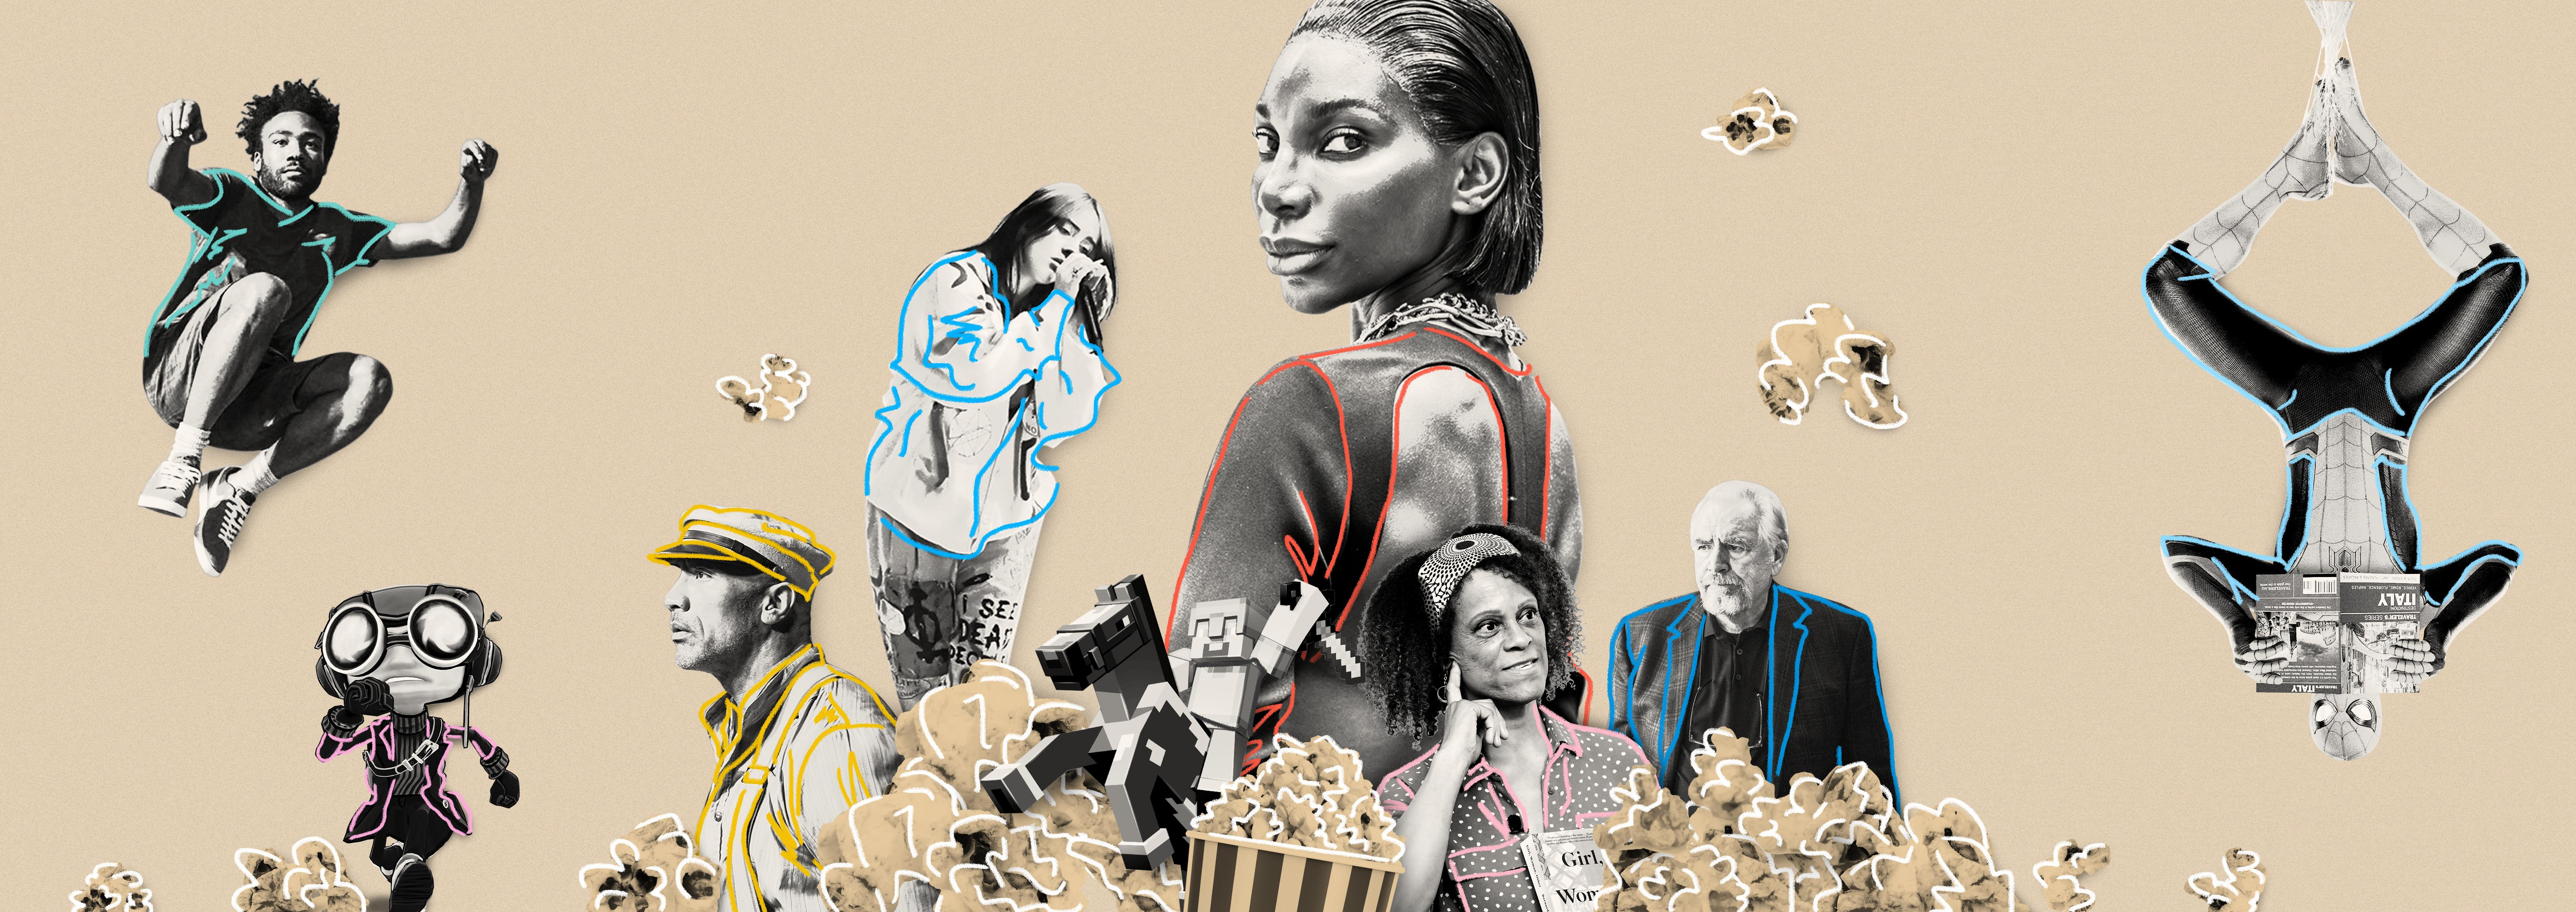 Digital collage featuring Michaela Coel, Brian Cox, the Rock, Billie Eilish and Donald Glover